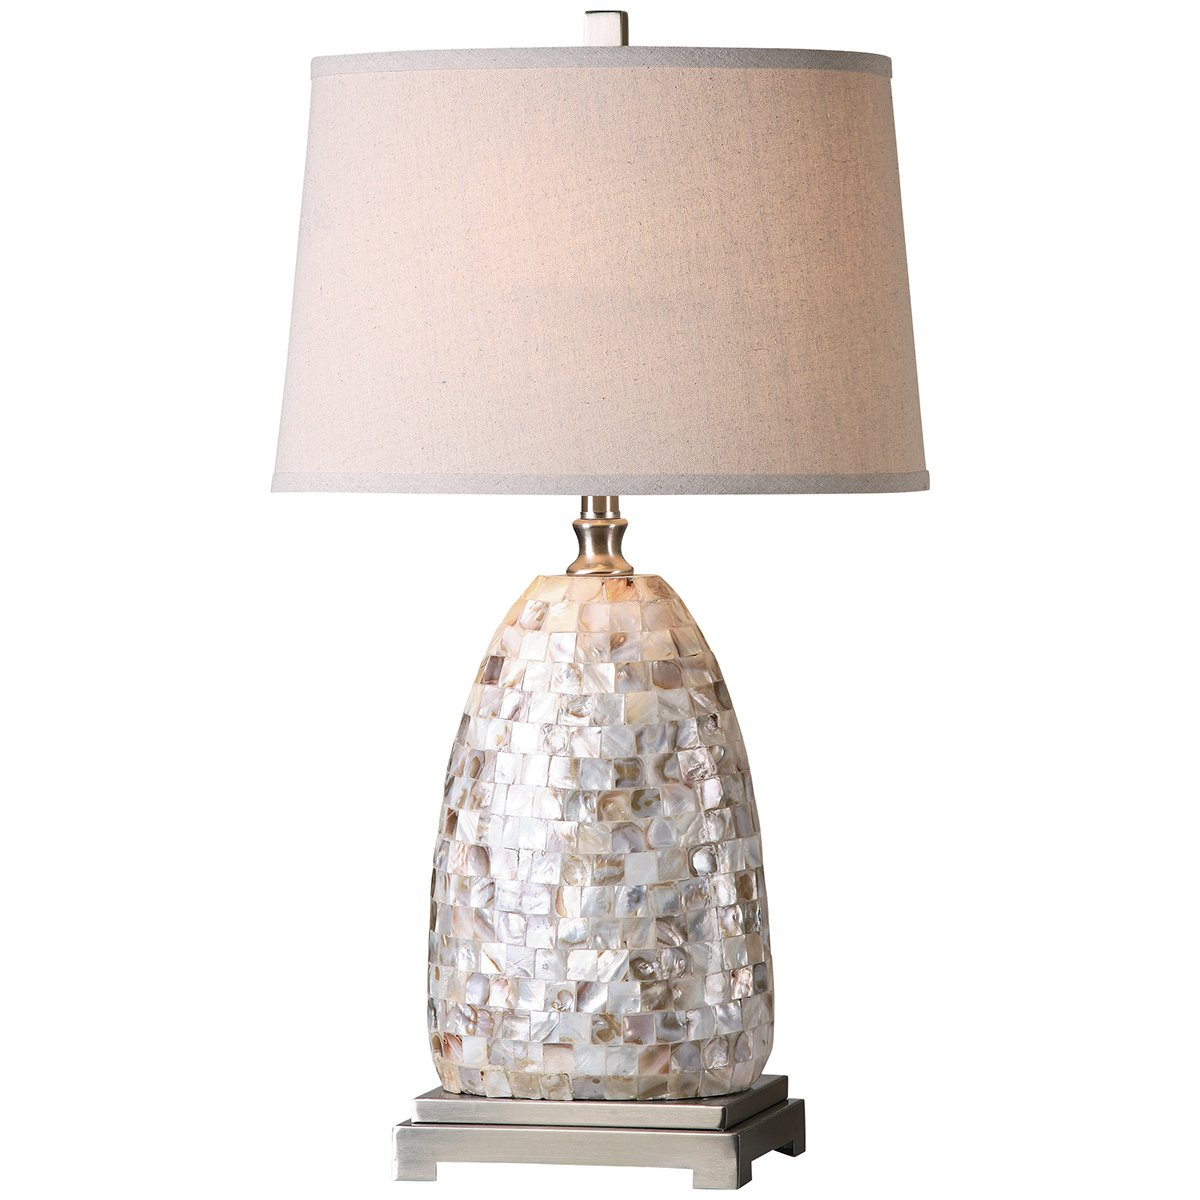 Amazon.com: Uttermost 26505 Capurso Capiz Shell Table Lamp: Home ...